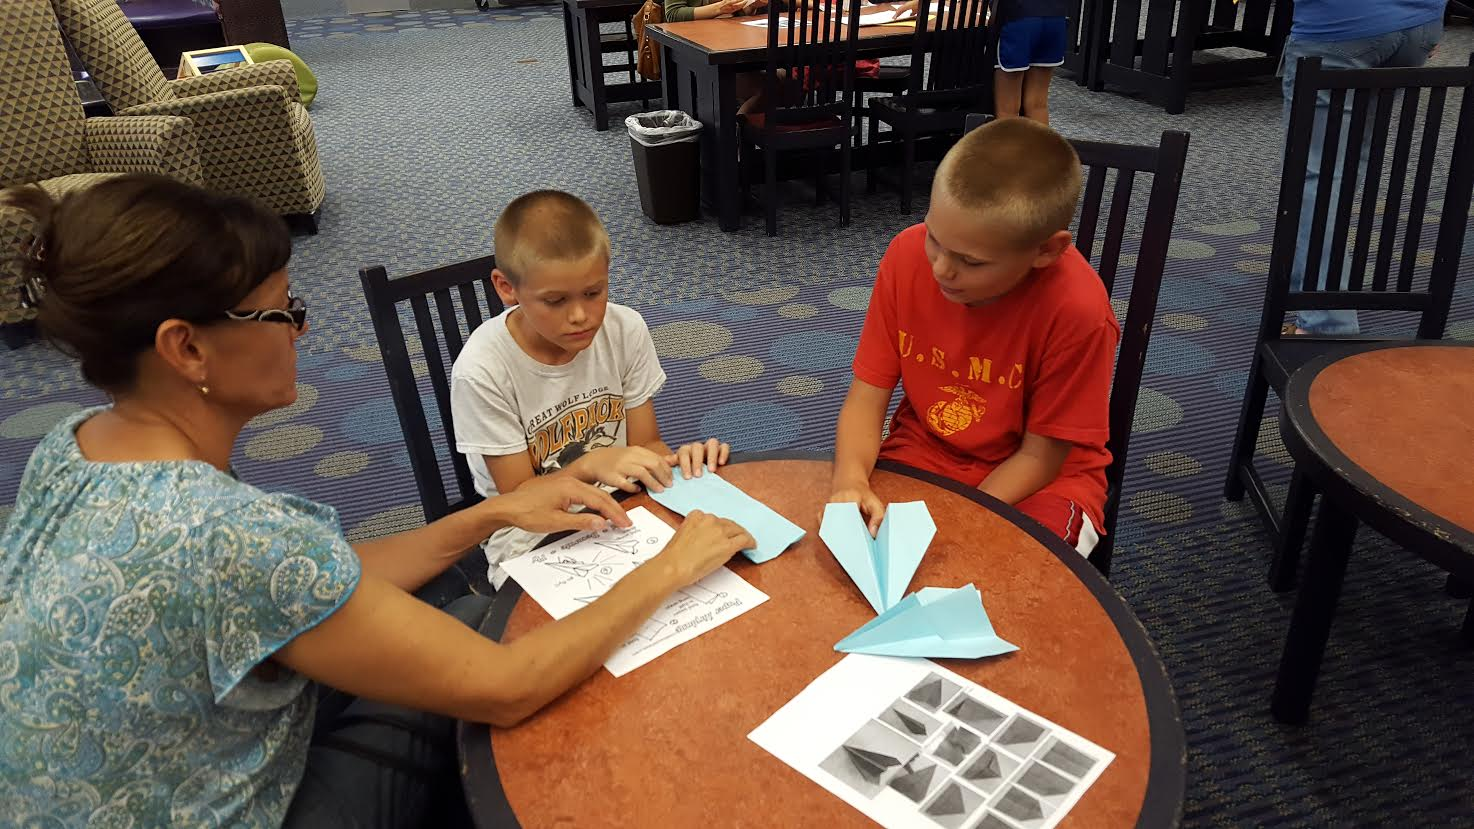 Kids making paper airplanes